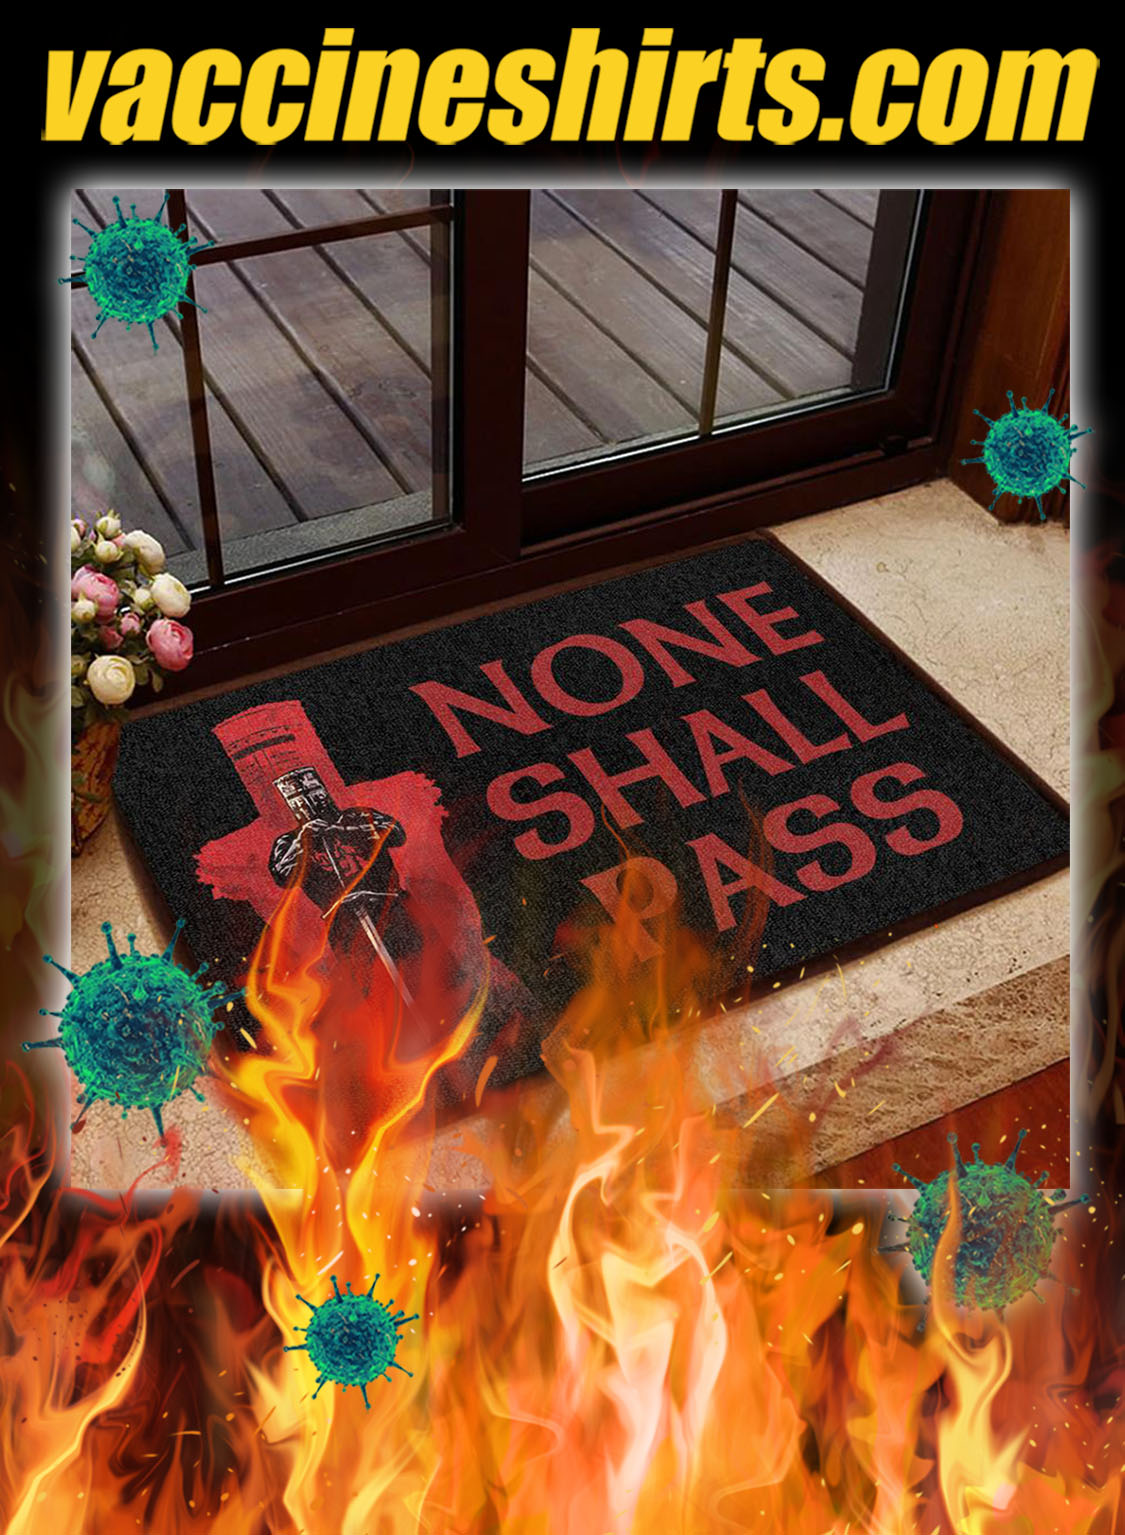 None shall pass doormat - pic 1